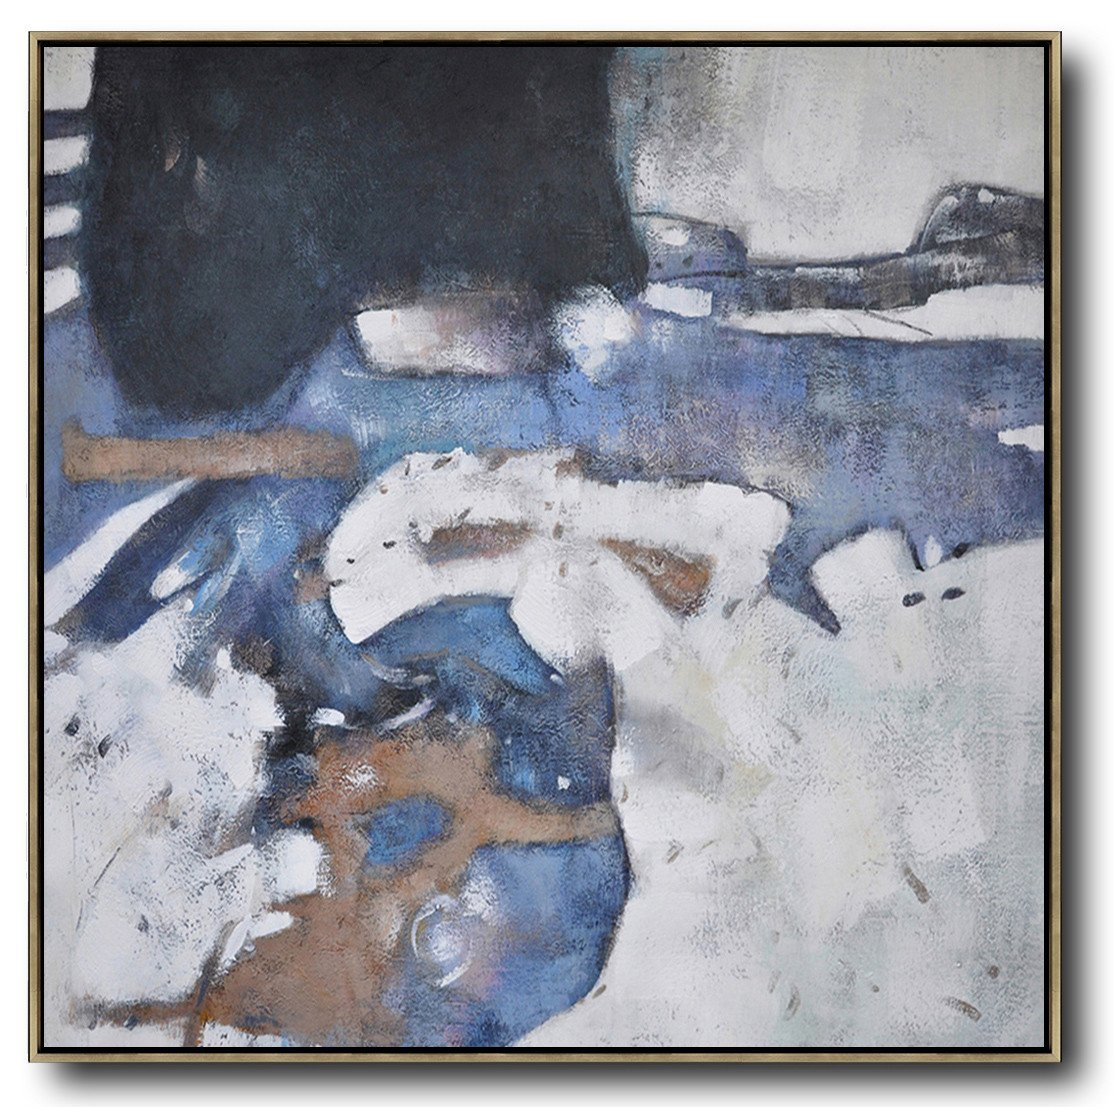 Handmade Large Painting,Oversized Abstract Painting,Hand Painted Acrylic Painting,White,Blue,Black,Gray.etc